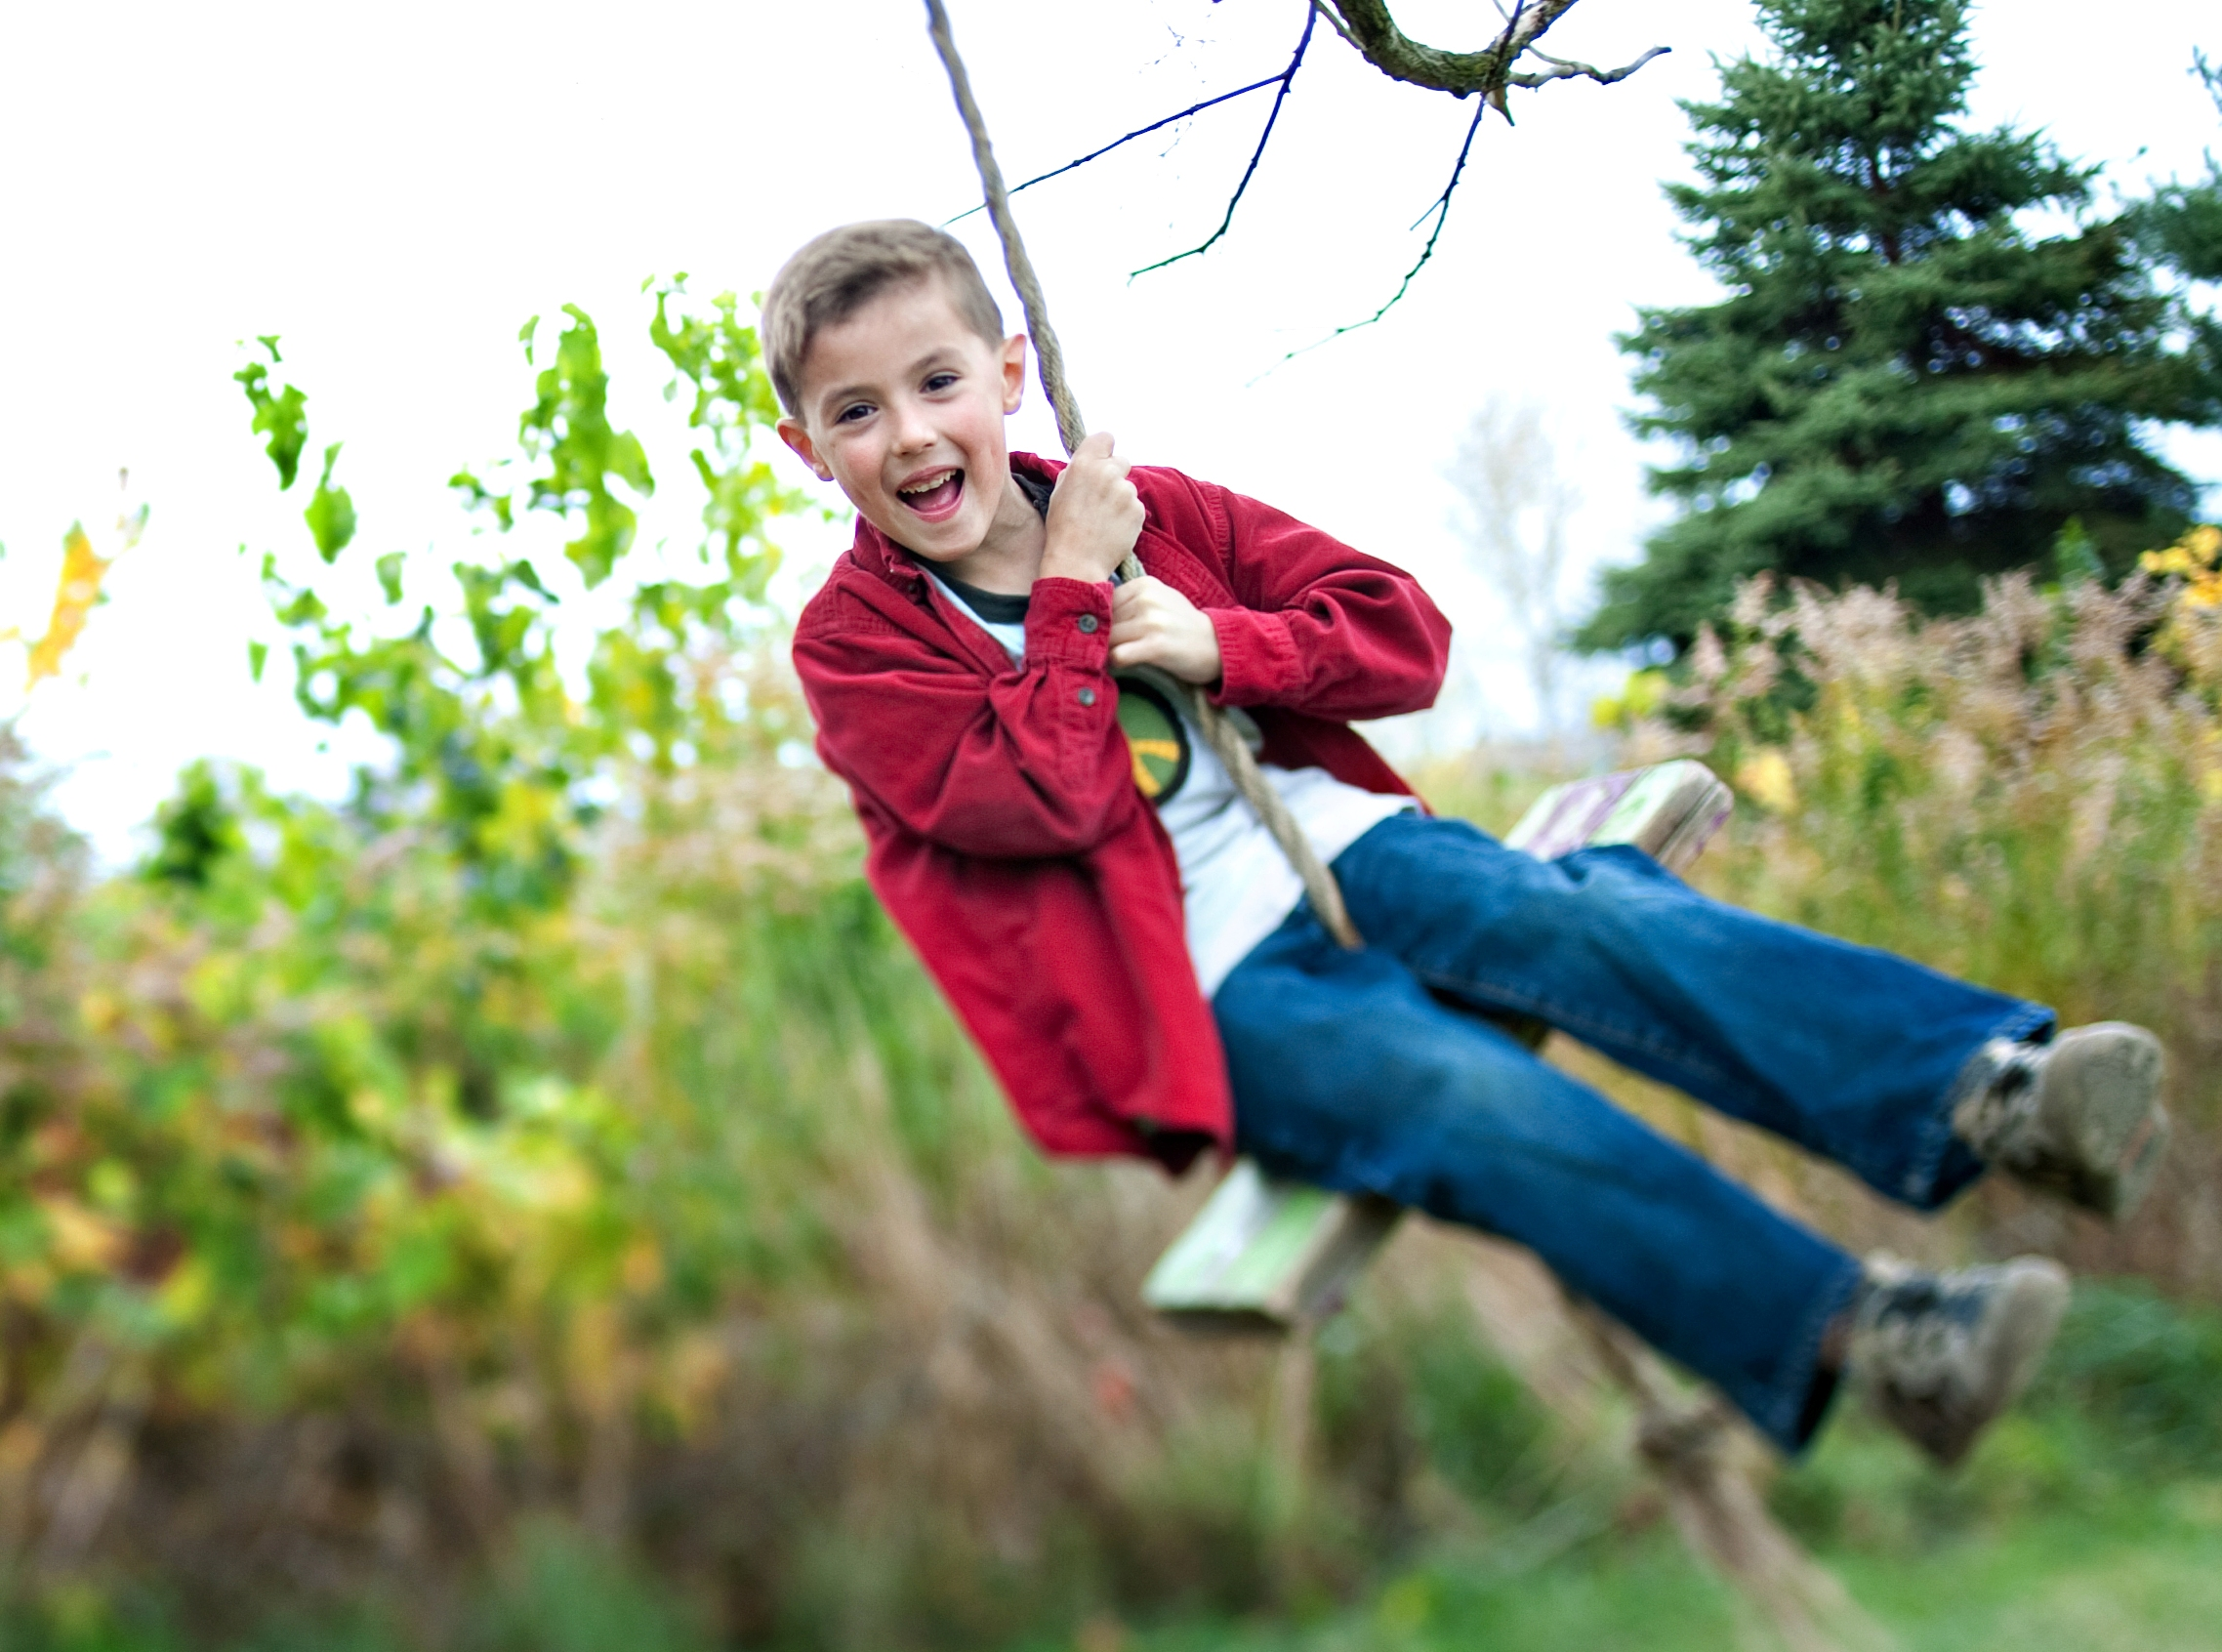 photo credit leisa thompson, boy on swing